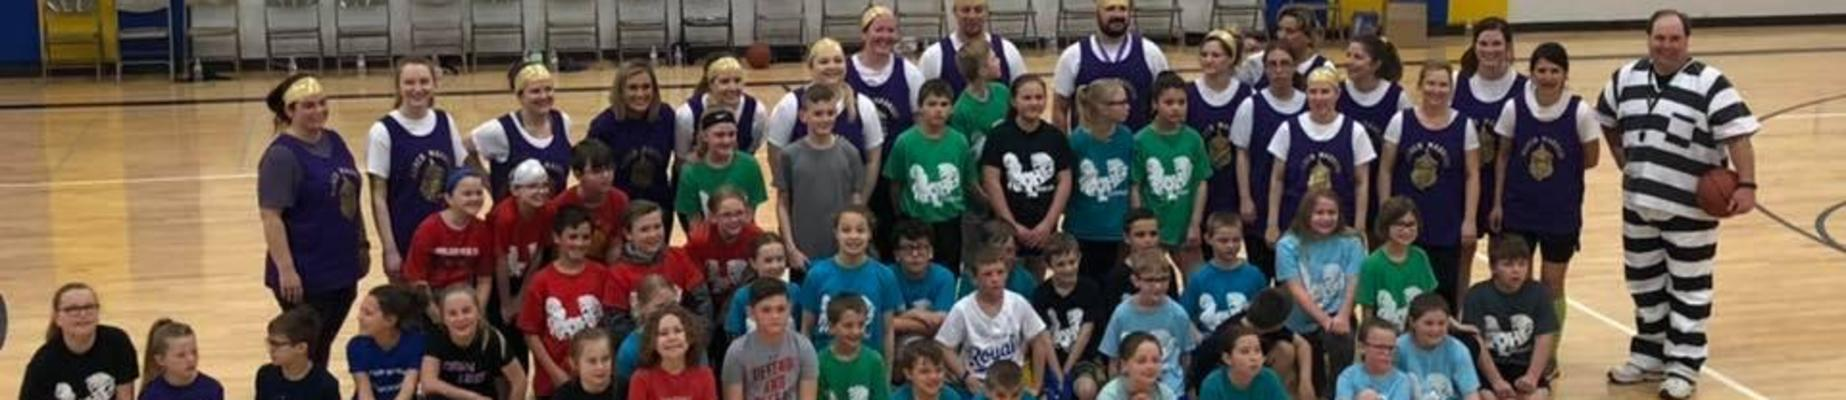 4th grade students and staff that played in March Madness basketball games against 4th grade